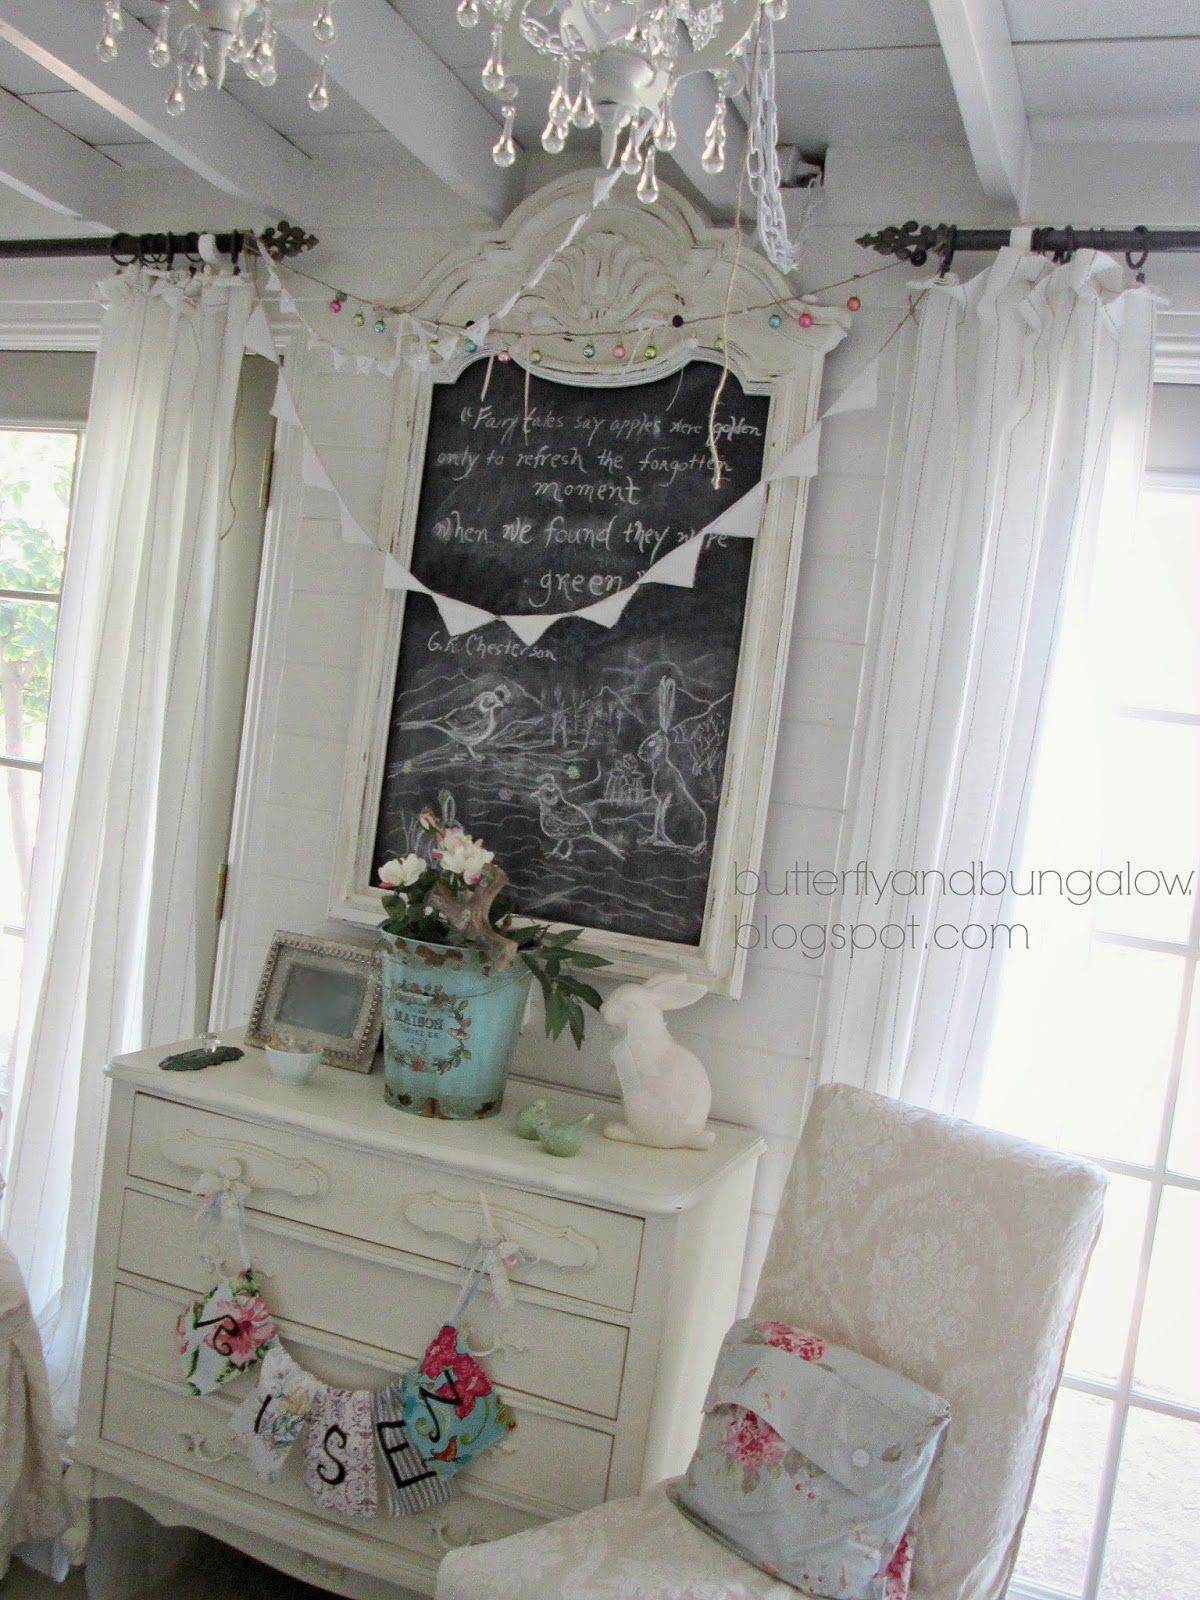 Pretty white dresser embellished with pale blues, rose and white decor.  butterfly 8)(8 bungalow